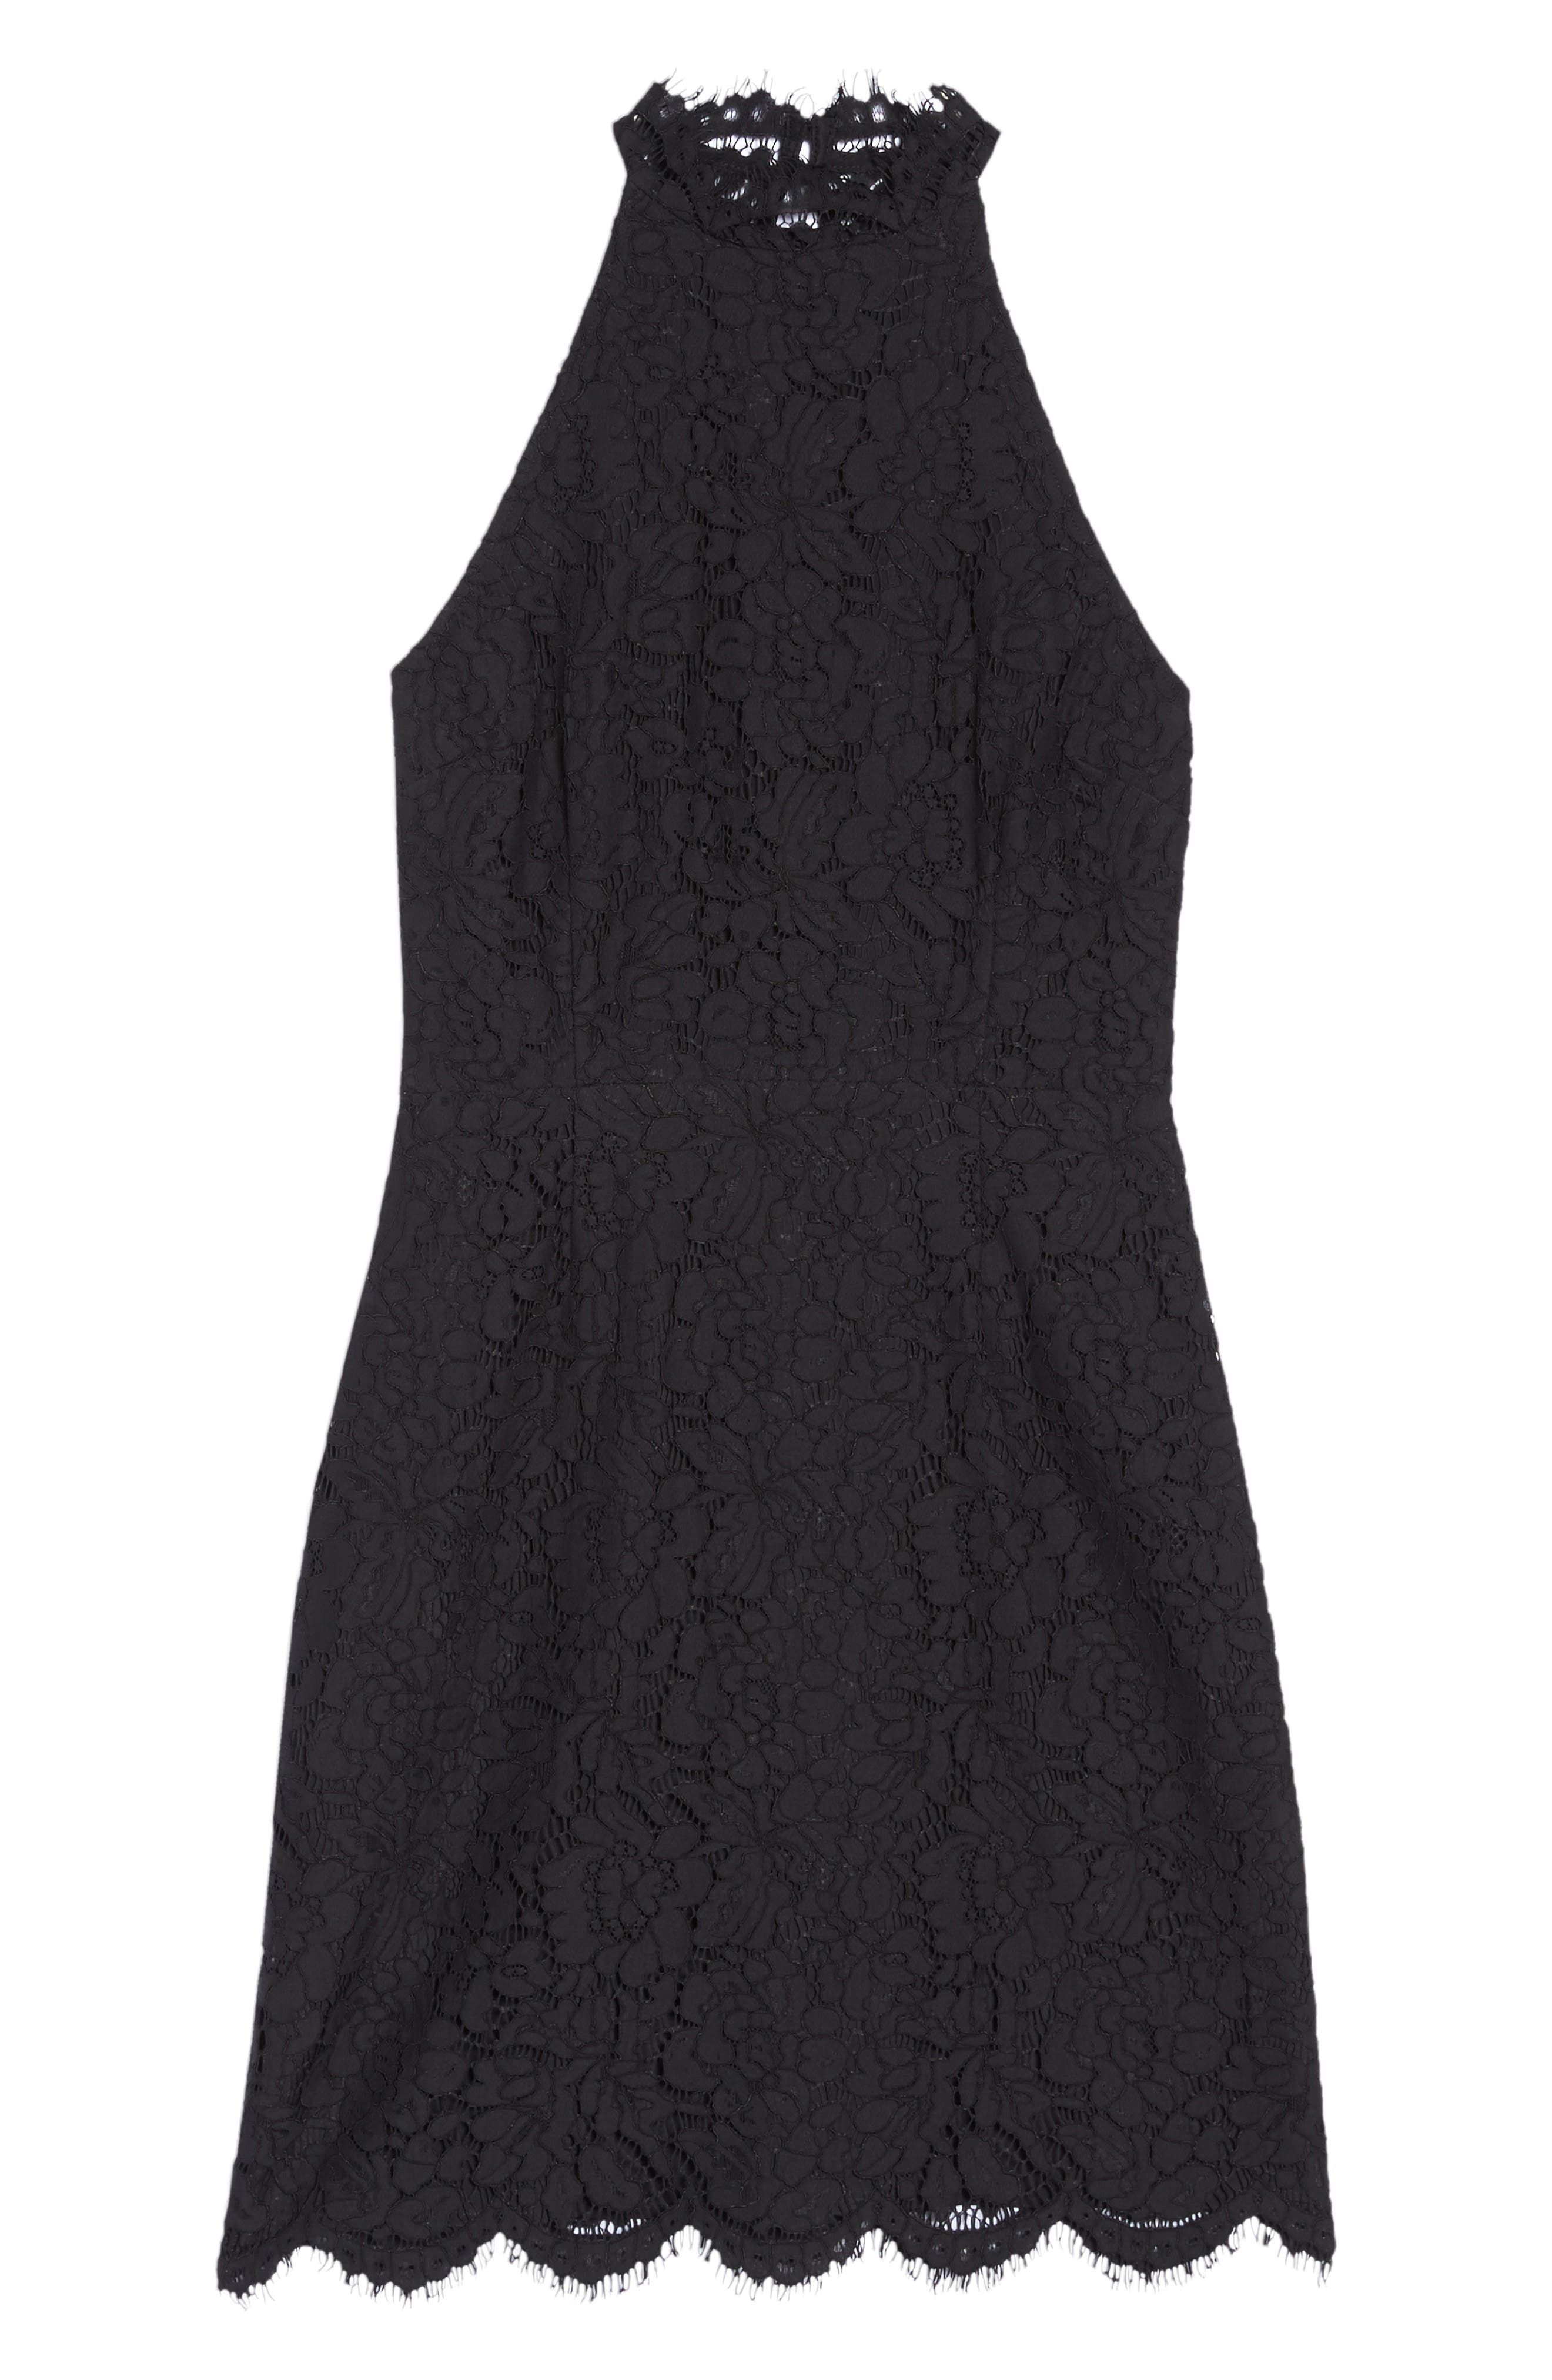 BB DAKOTA, Cara High Neck Lace Cocktail Dress, Alternate thumbnail 7, color, 001